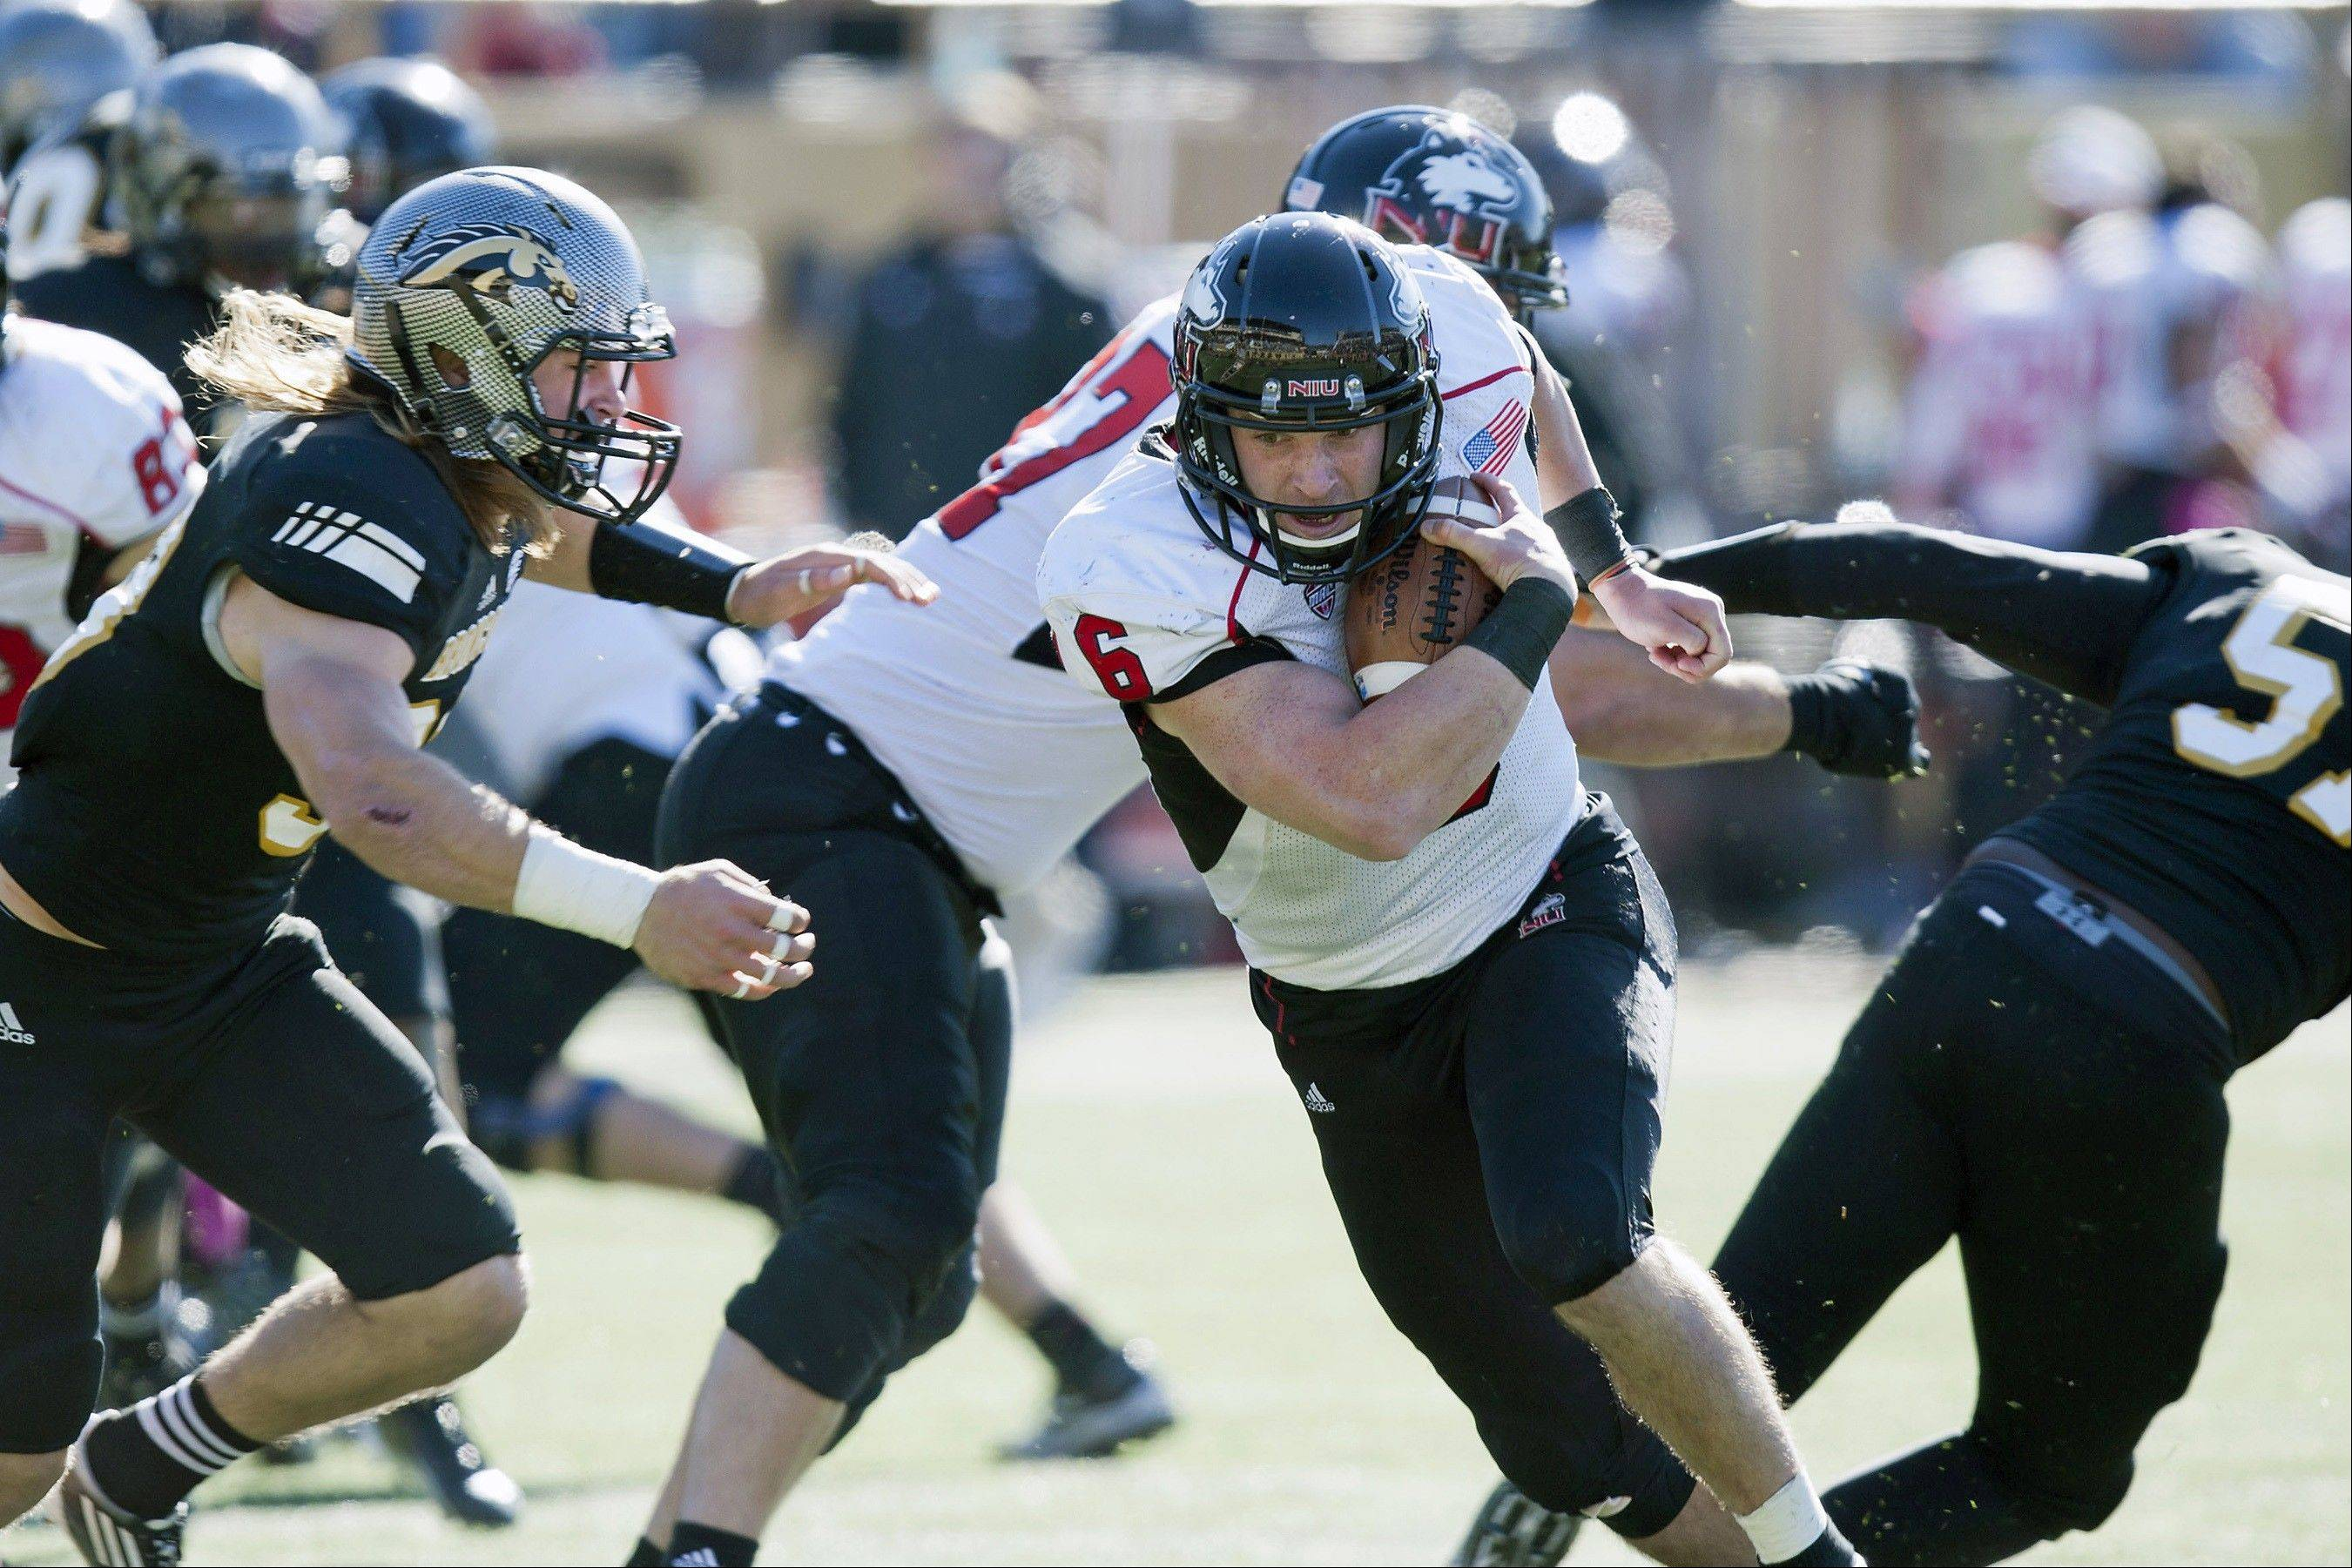 When he wasn't running the ball against Western Michigan last week, Northern Illinois quarterback Jordan Lynch threw 4 touchdown passes in the 48-34 win.